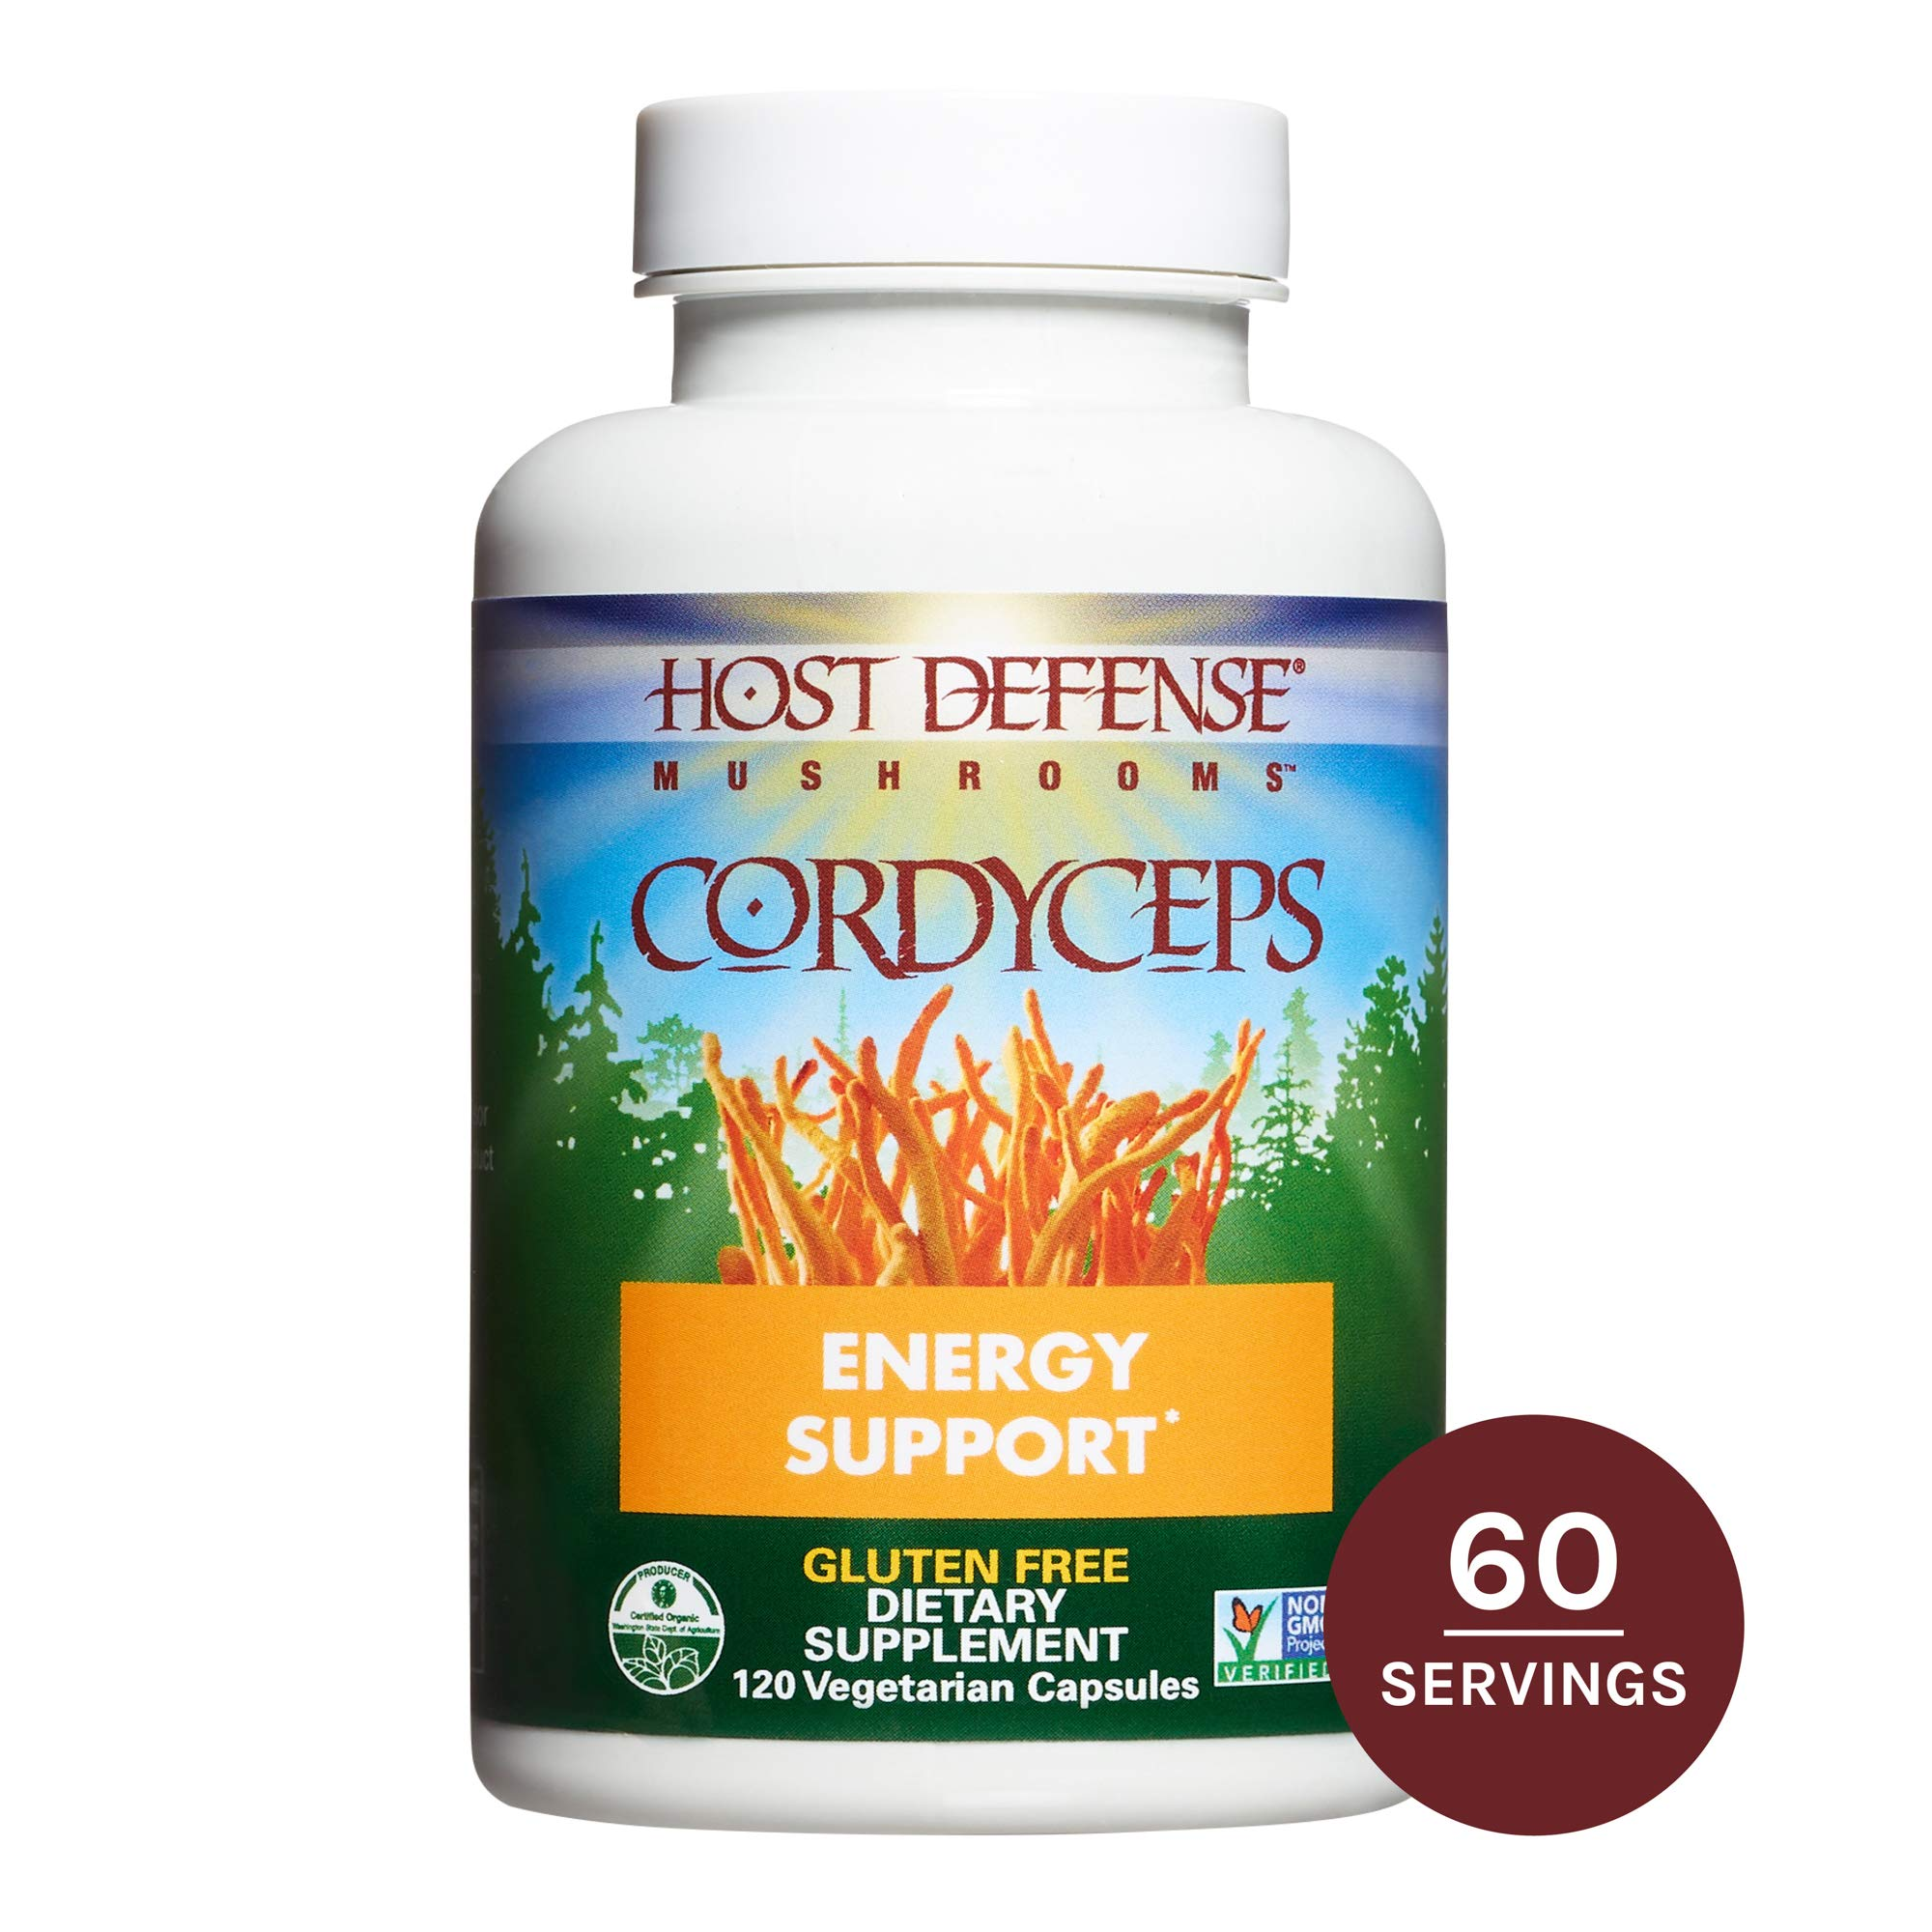 Host Defense, Cordyceps Capsules, Energy and Stamina Support, Daily Dietary Supplement, USDA Organic, Gluten Free, 120 vegetarian capsules (60 servings) by Host Defense